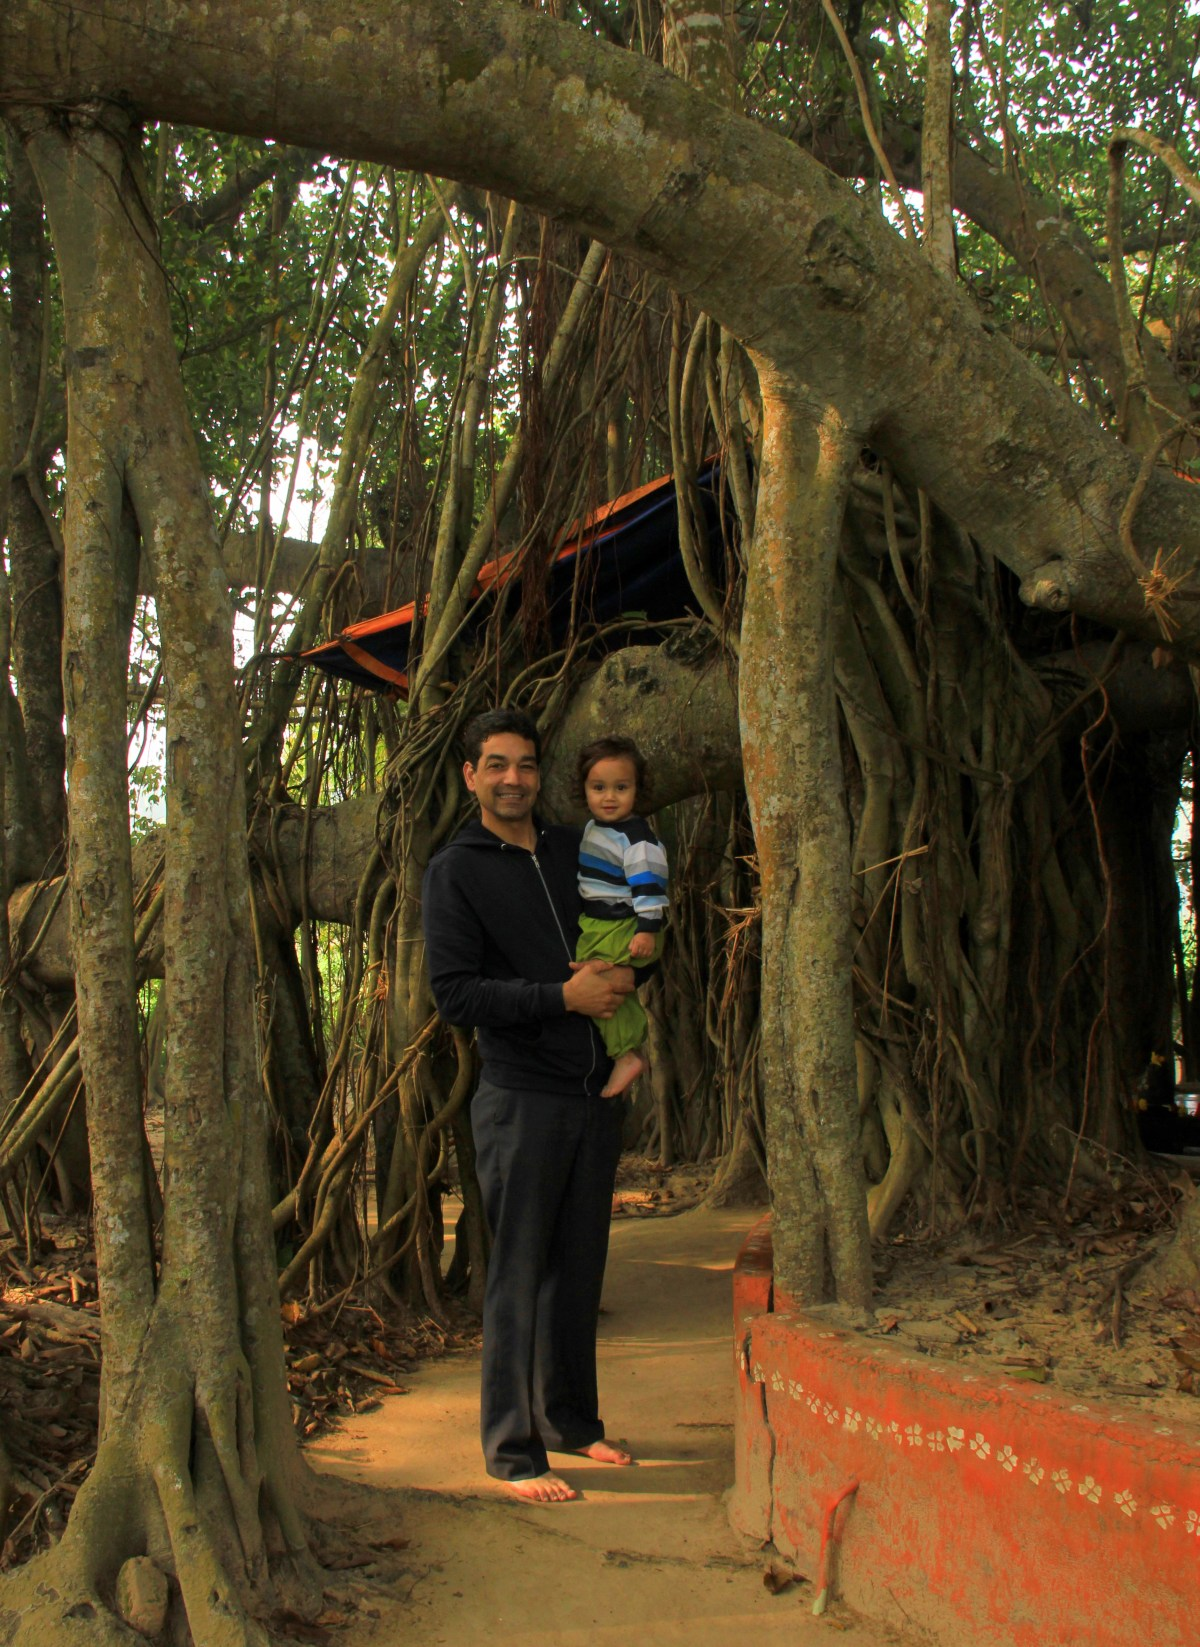 The thousand year old banyan tree of Amadpur